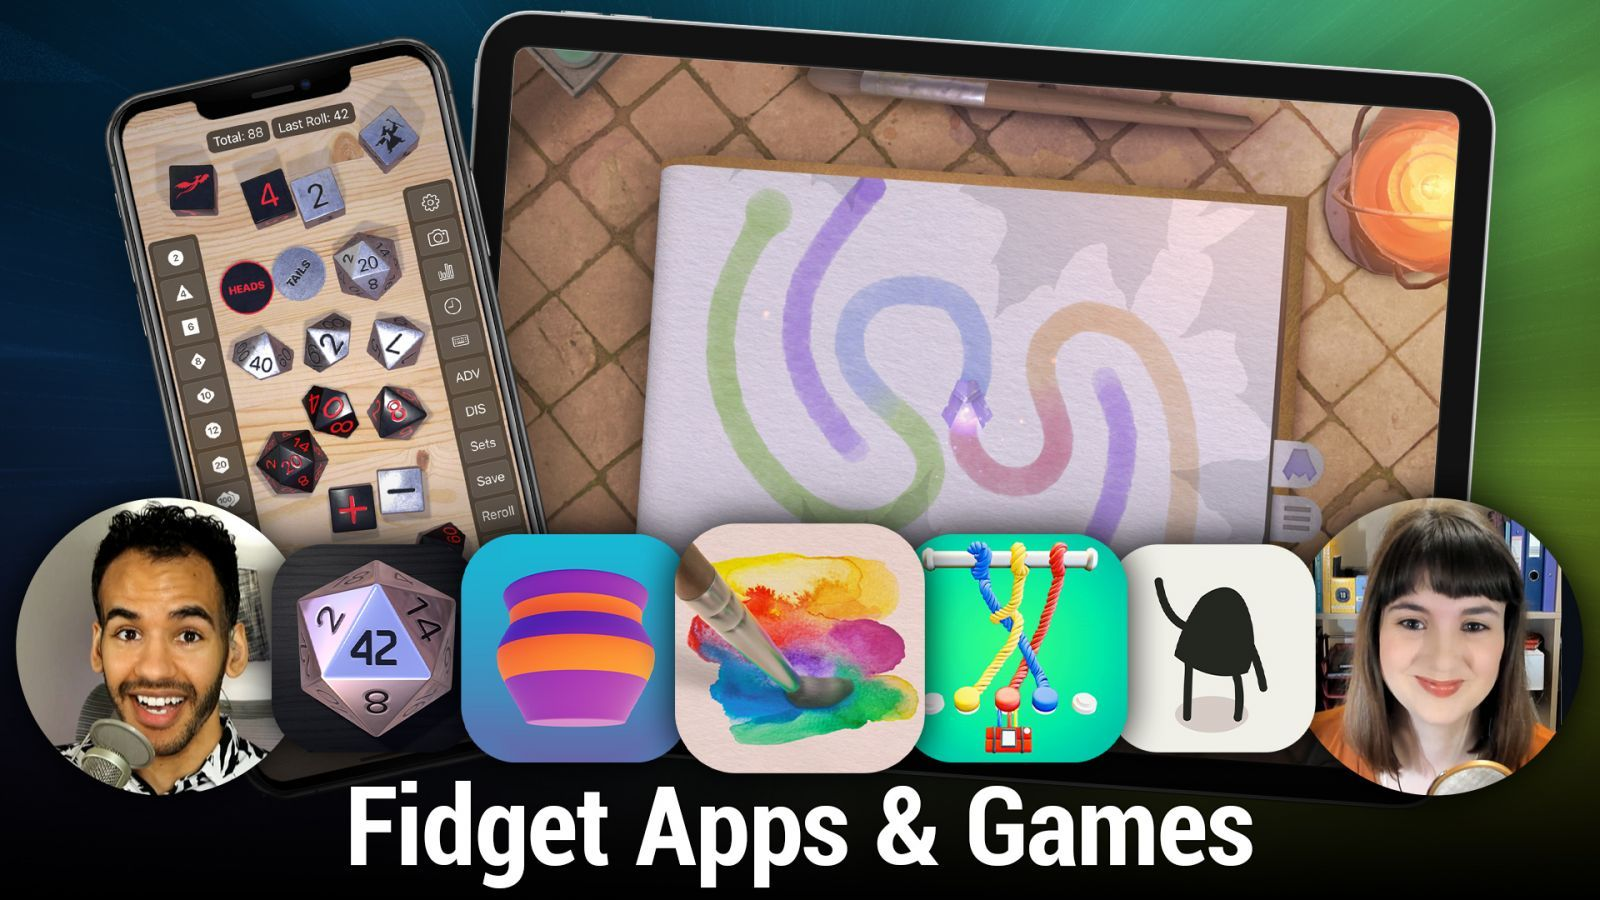 iOS 539: Fidget Apps & Games - Dice by PCalc, Super Balls, Empty., Patterned, fidget: calm and clear